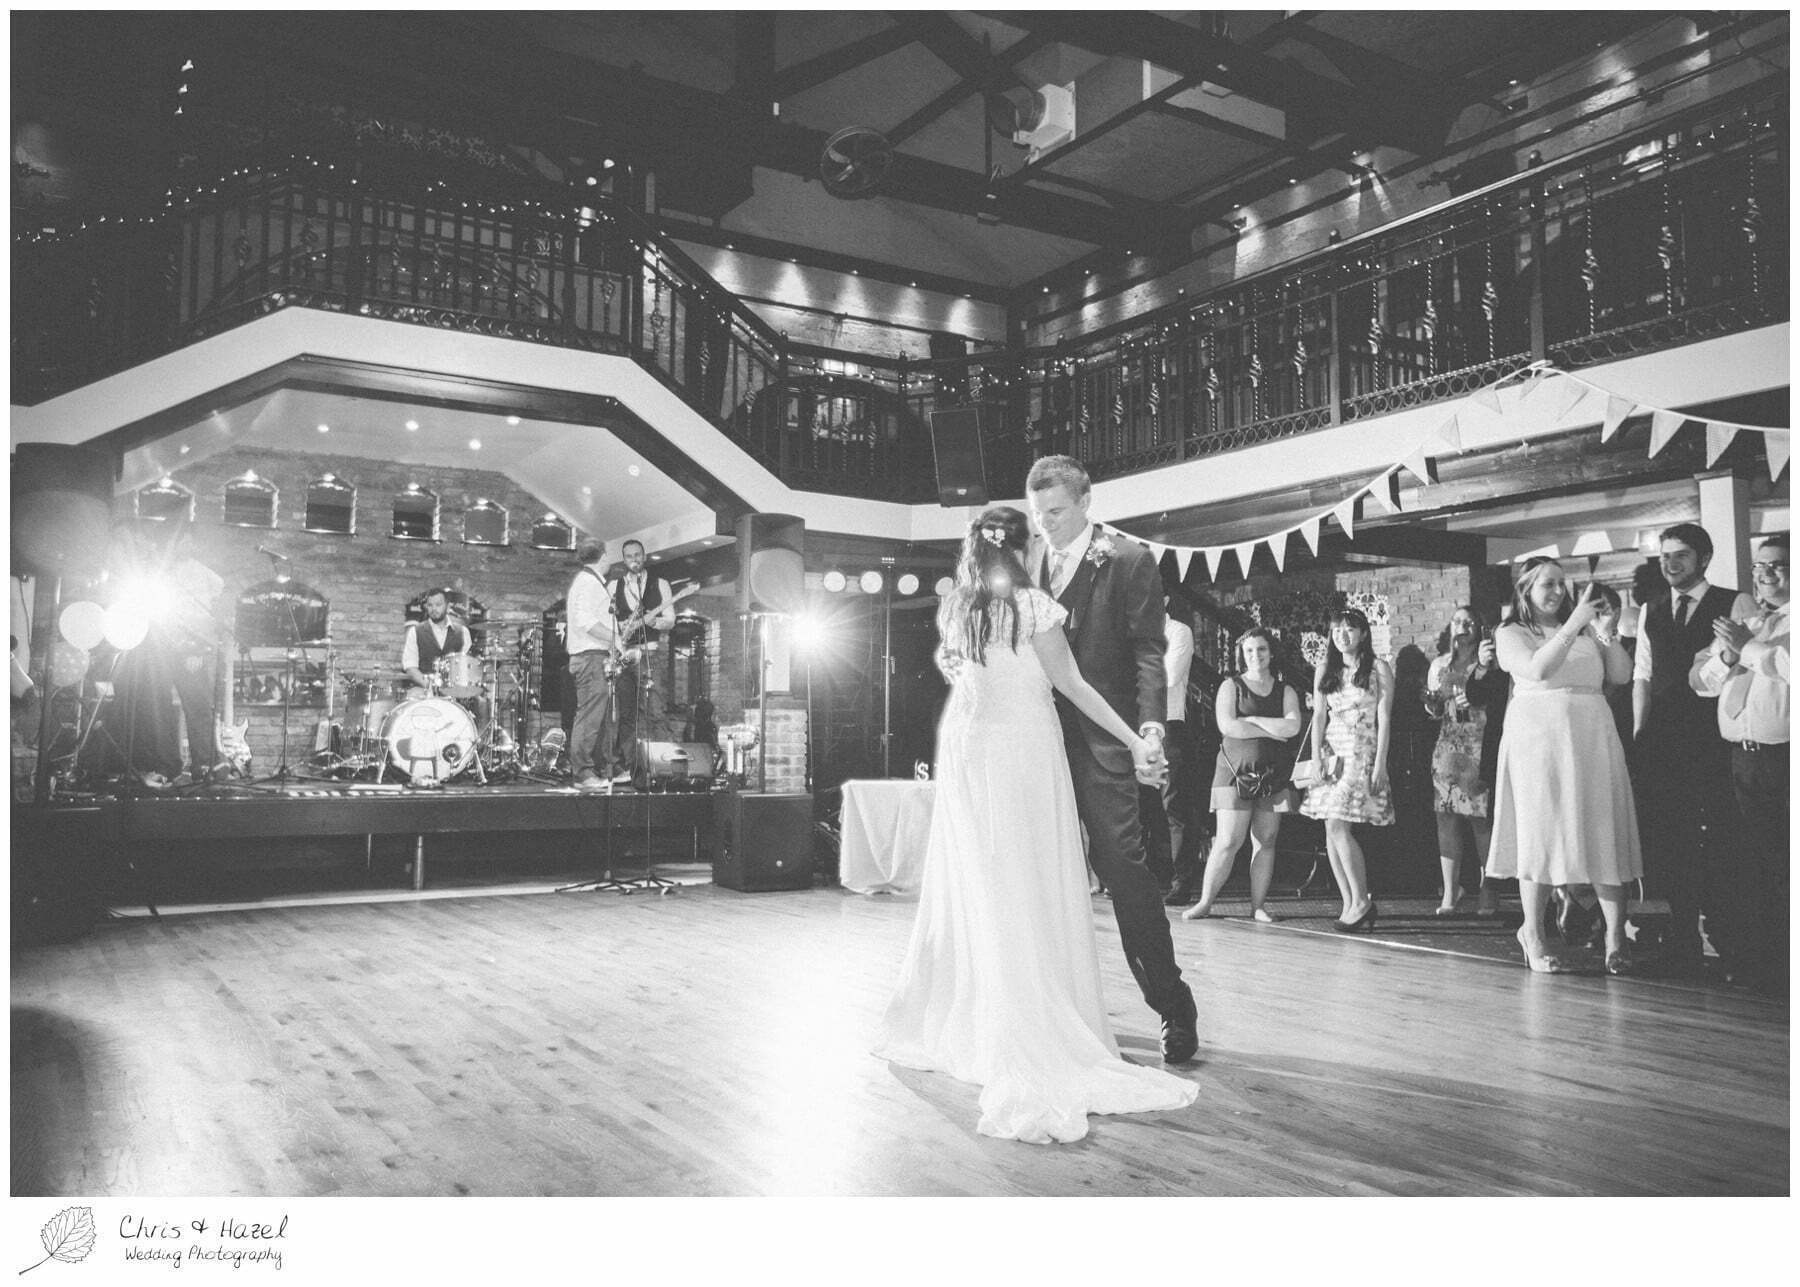 bride and groom first dance, first dance, wedding, south milford Wedding Photographer, the engine shed, wetherby wedding venue, Wedding Photography wetherby, Chris and Hazel Wedding Photography, stevie pollard, stevie standerline, paul standerline,